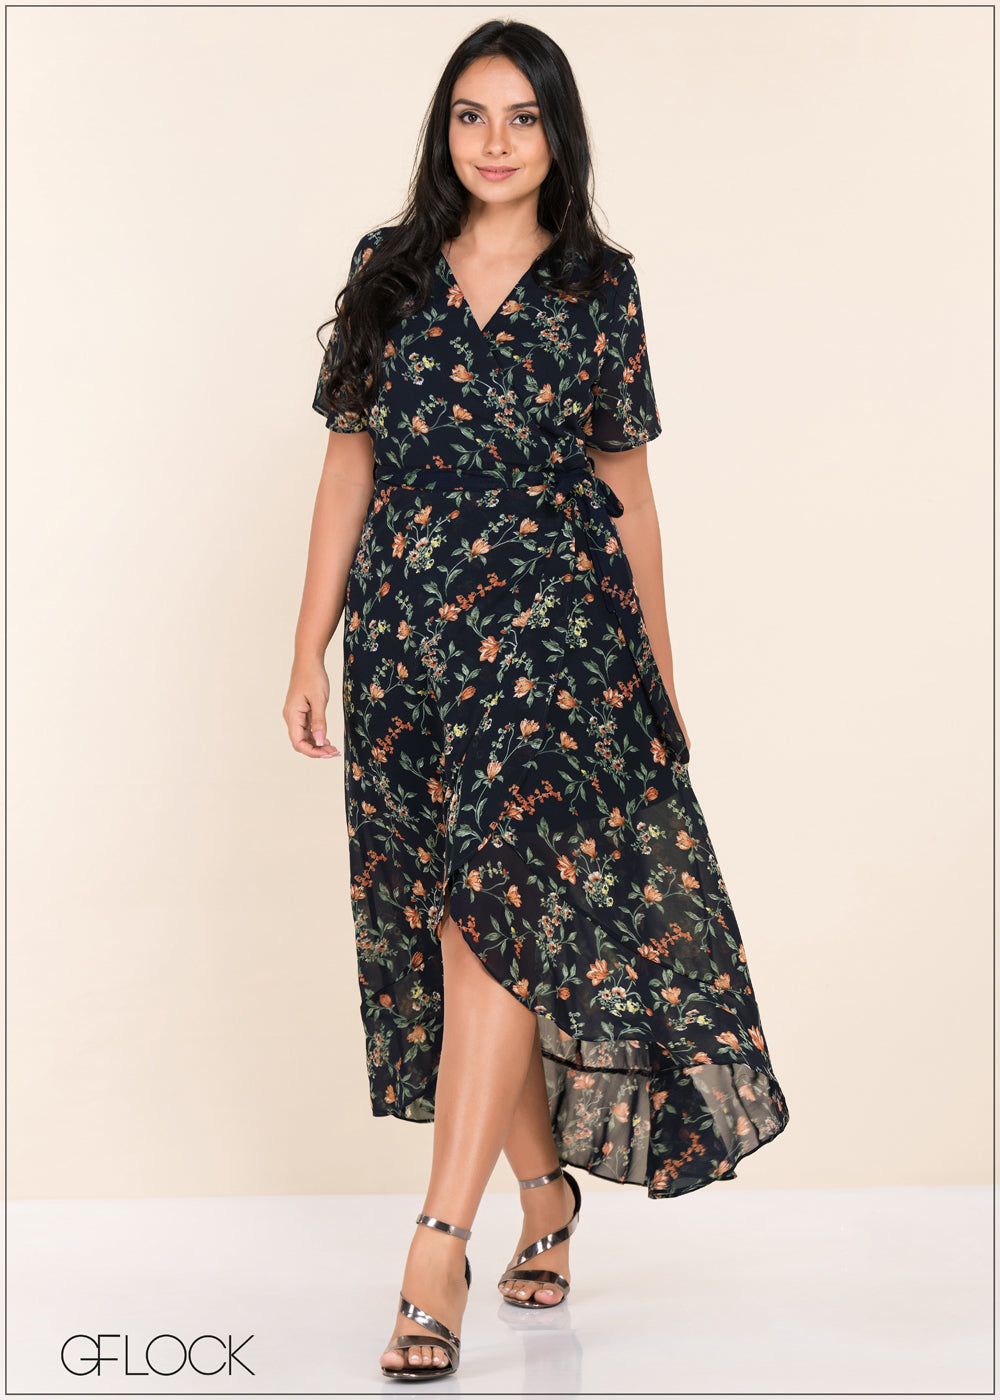 High Low Wrap Dress - GFLOCK.LK